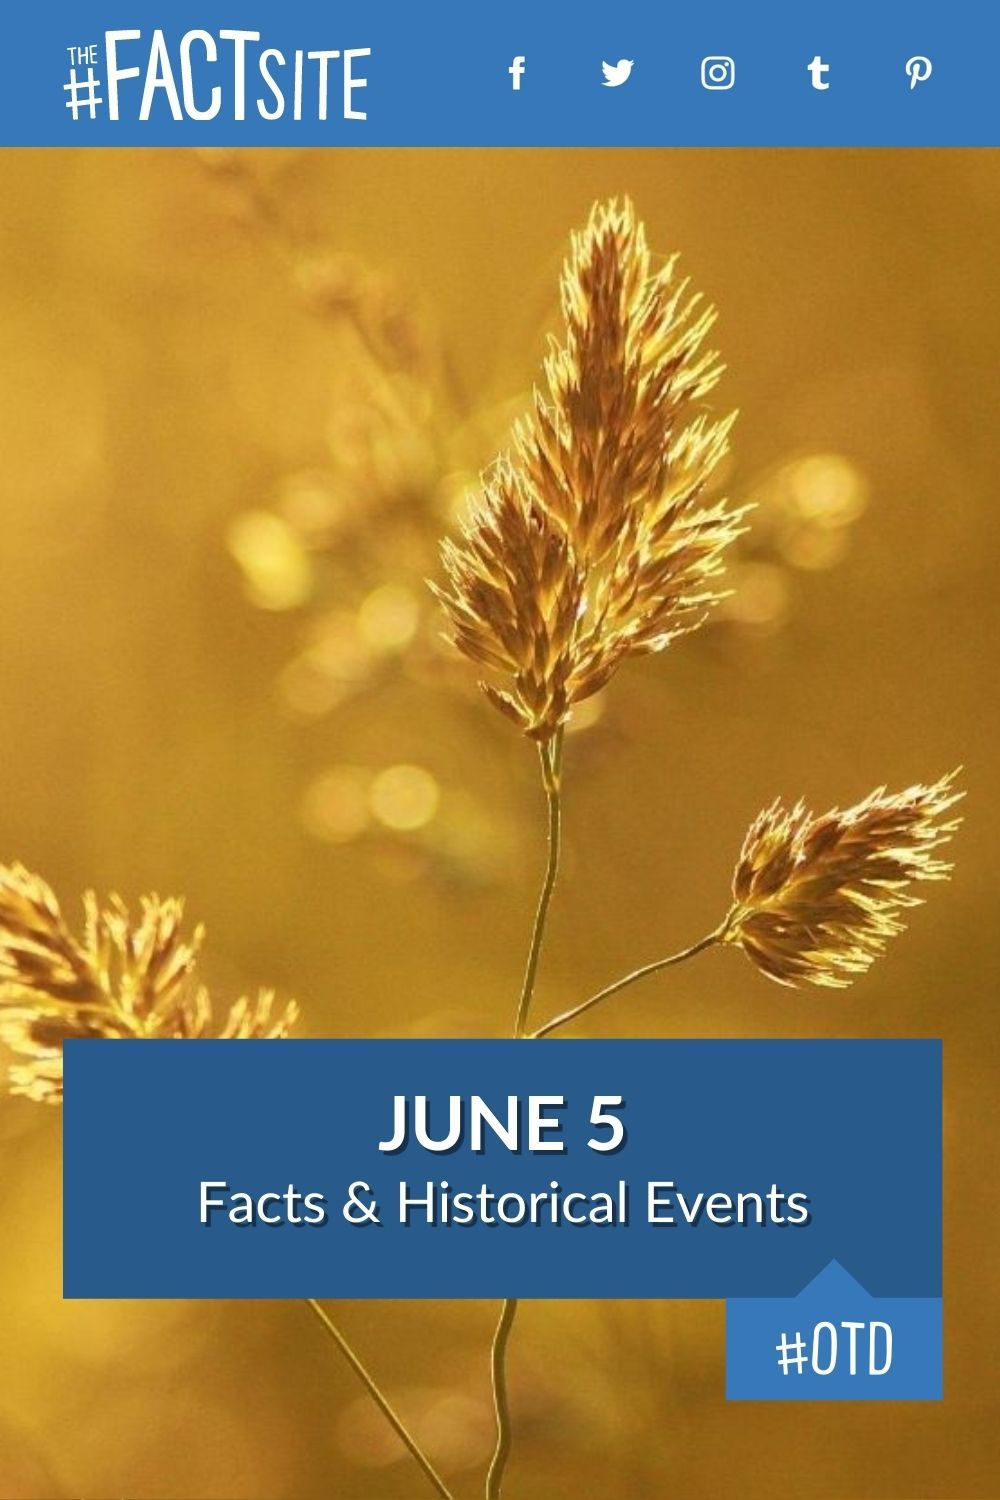 Facts & Historic Events That Happened on June 5